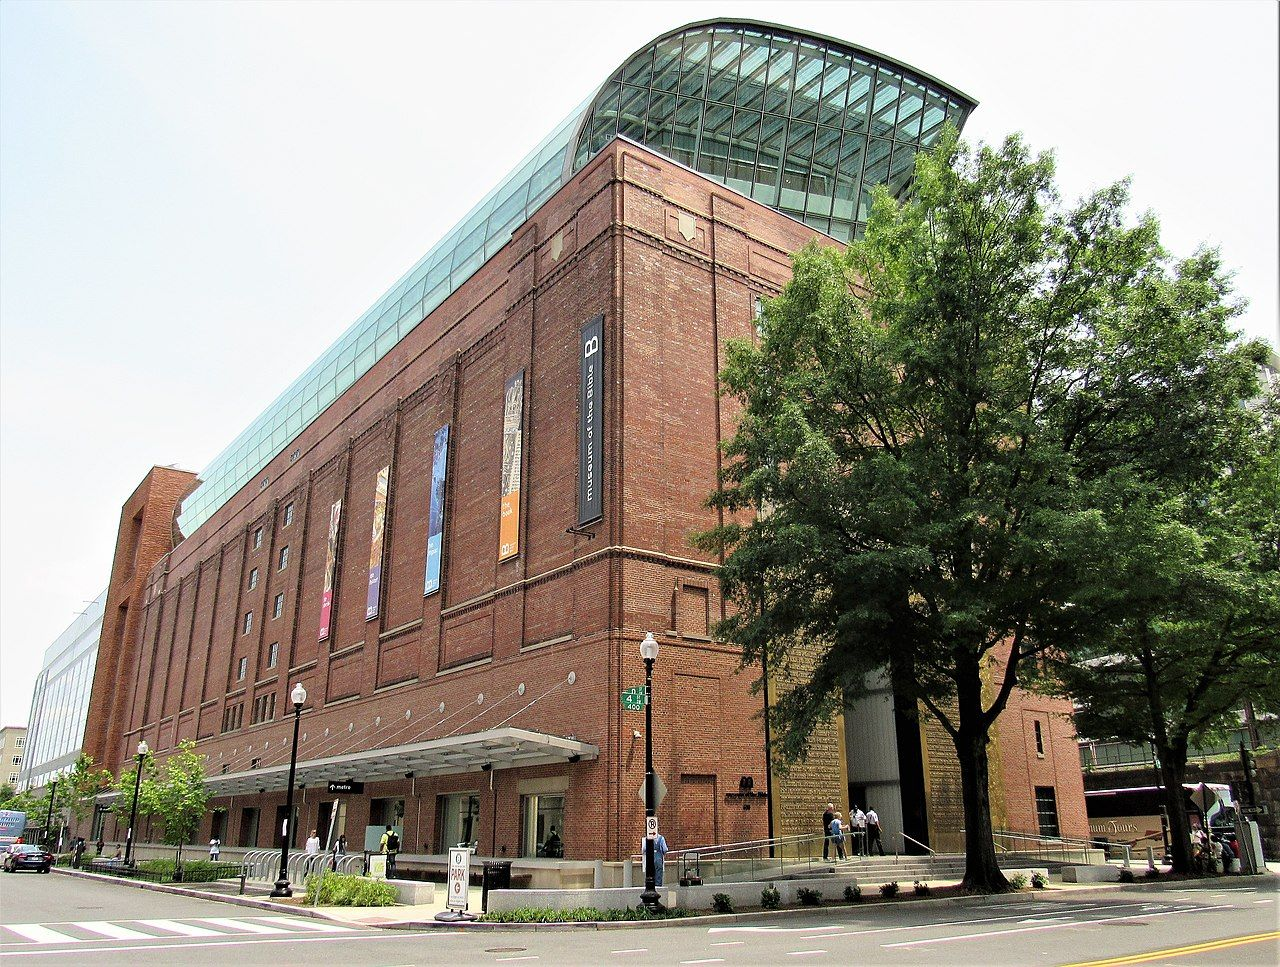 The Museum of the Bible in Washington, DC, has been at the  centre of controversy over its acquisitions process